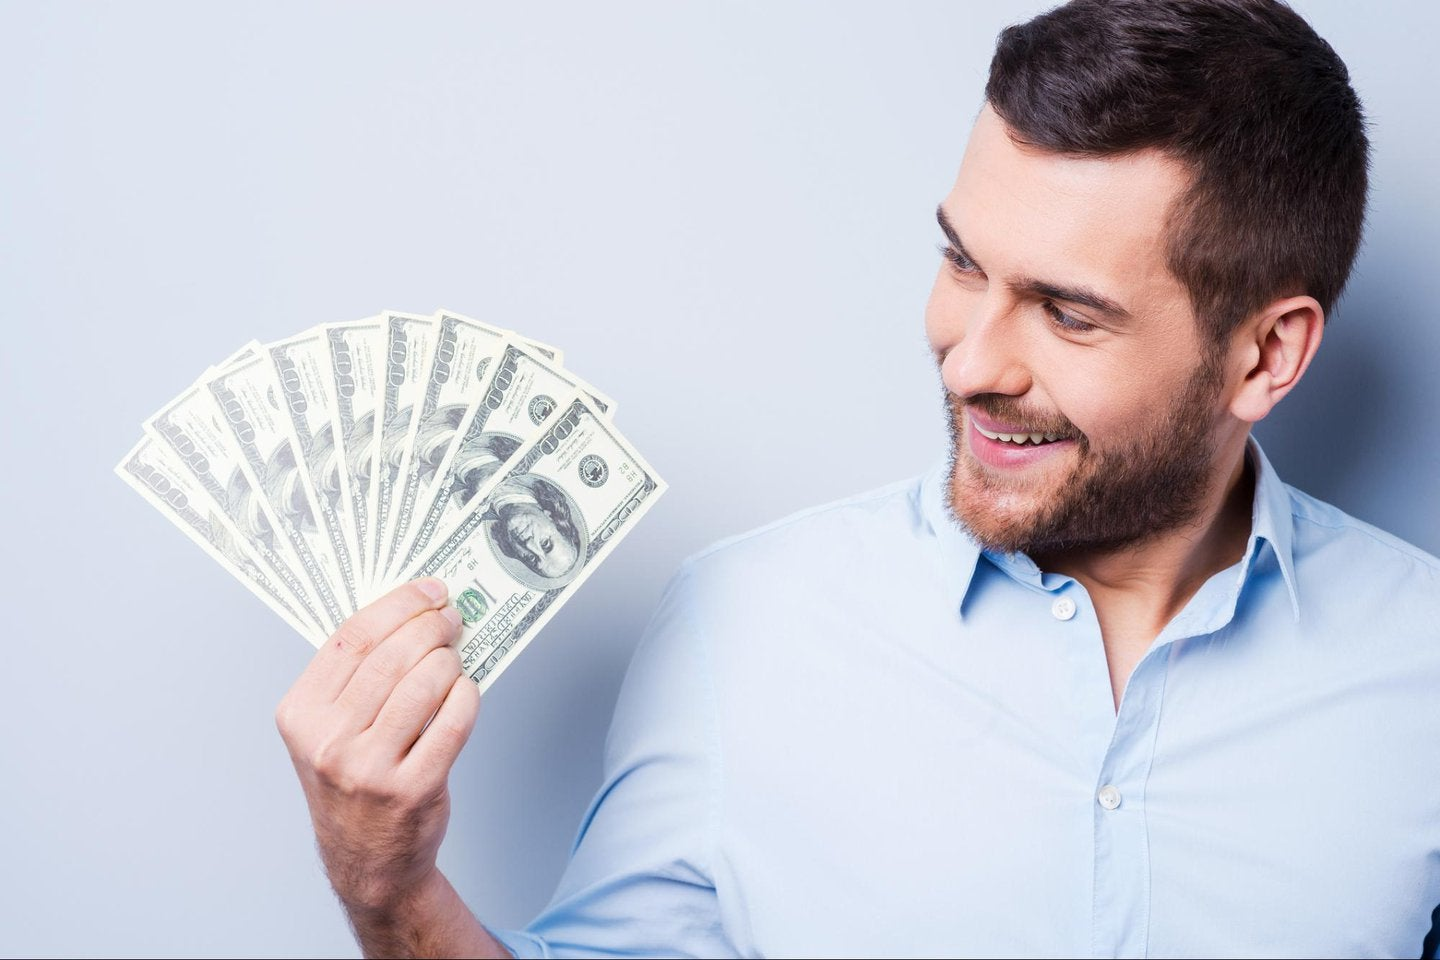 Man smiling with money